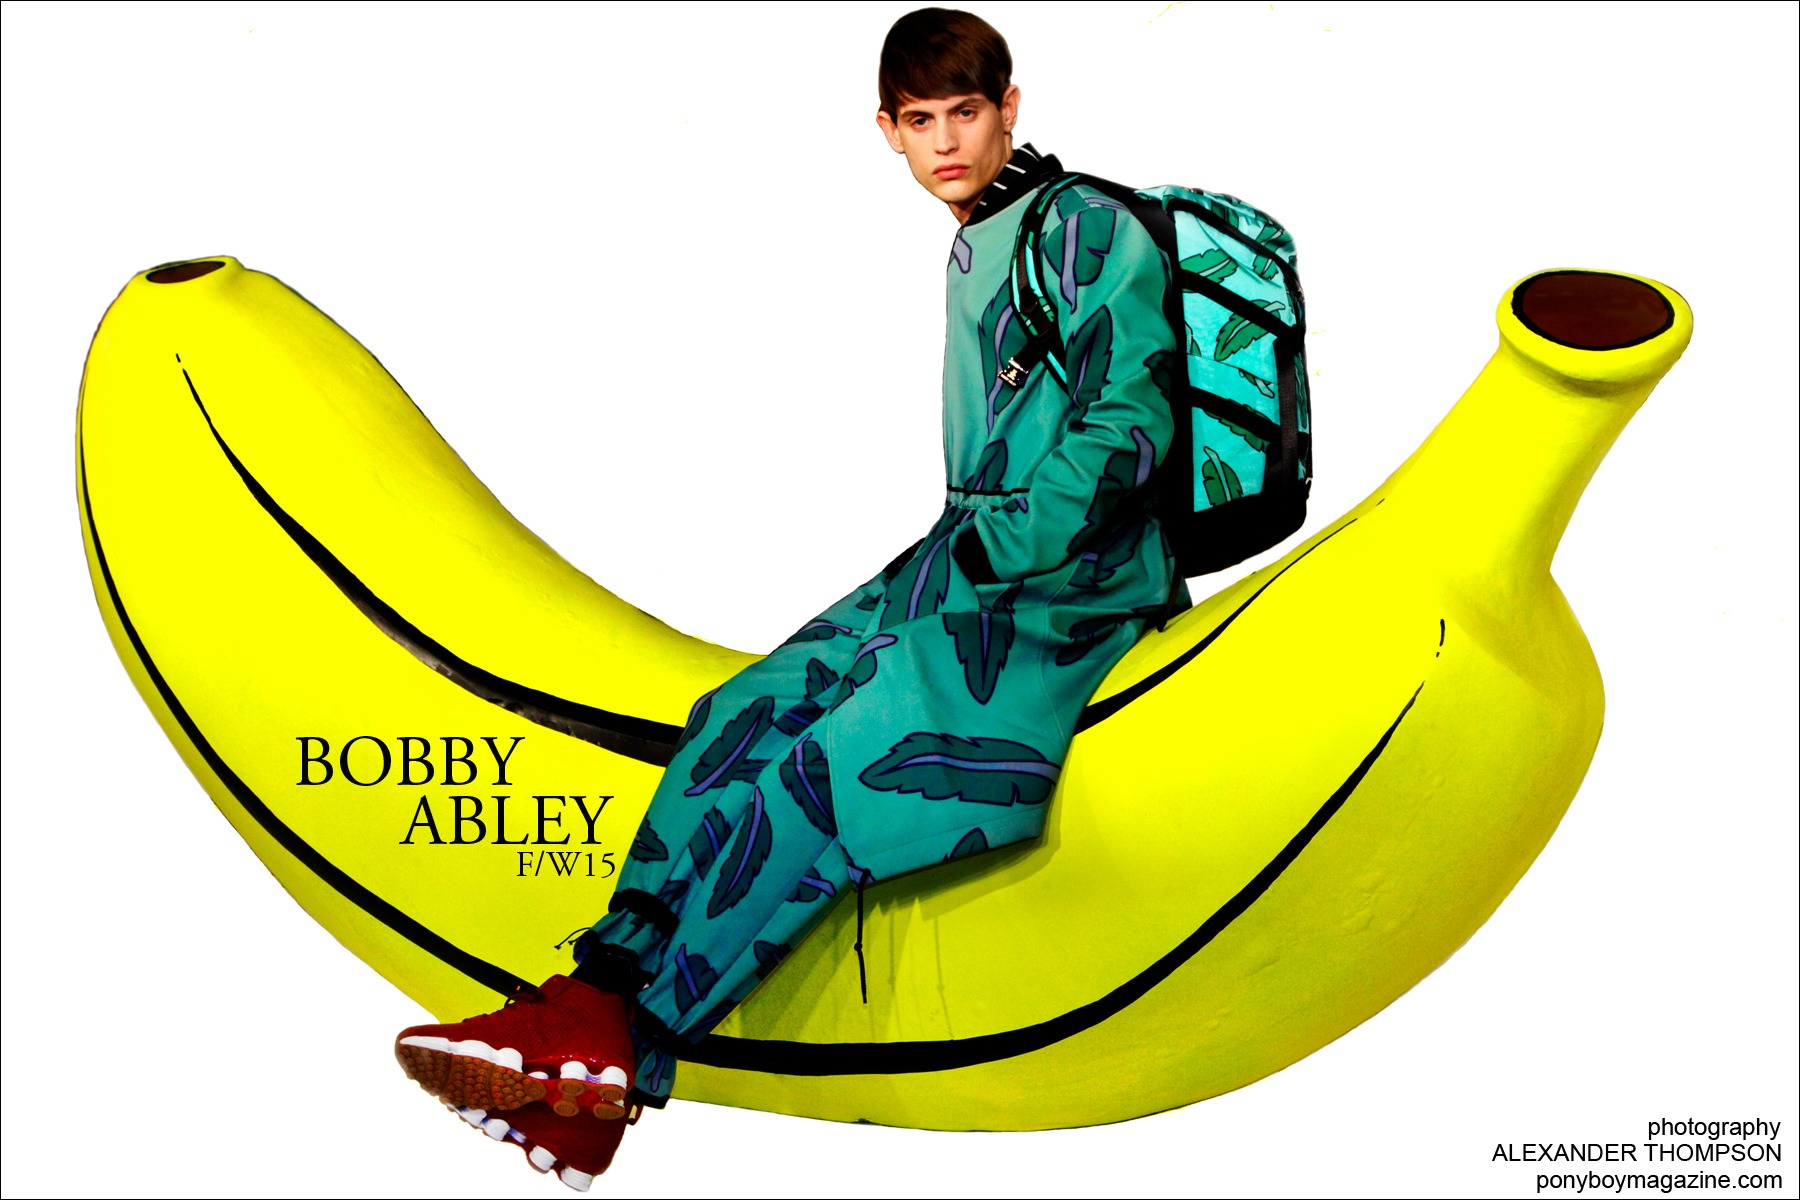 Male model Jakub Pastor photographed by Alexander Thompson at Bobby Abley F/W15 presentation, for Ponyboy magazine NY.